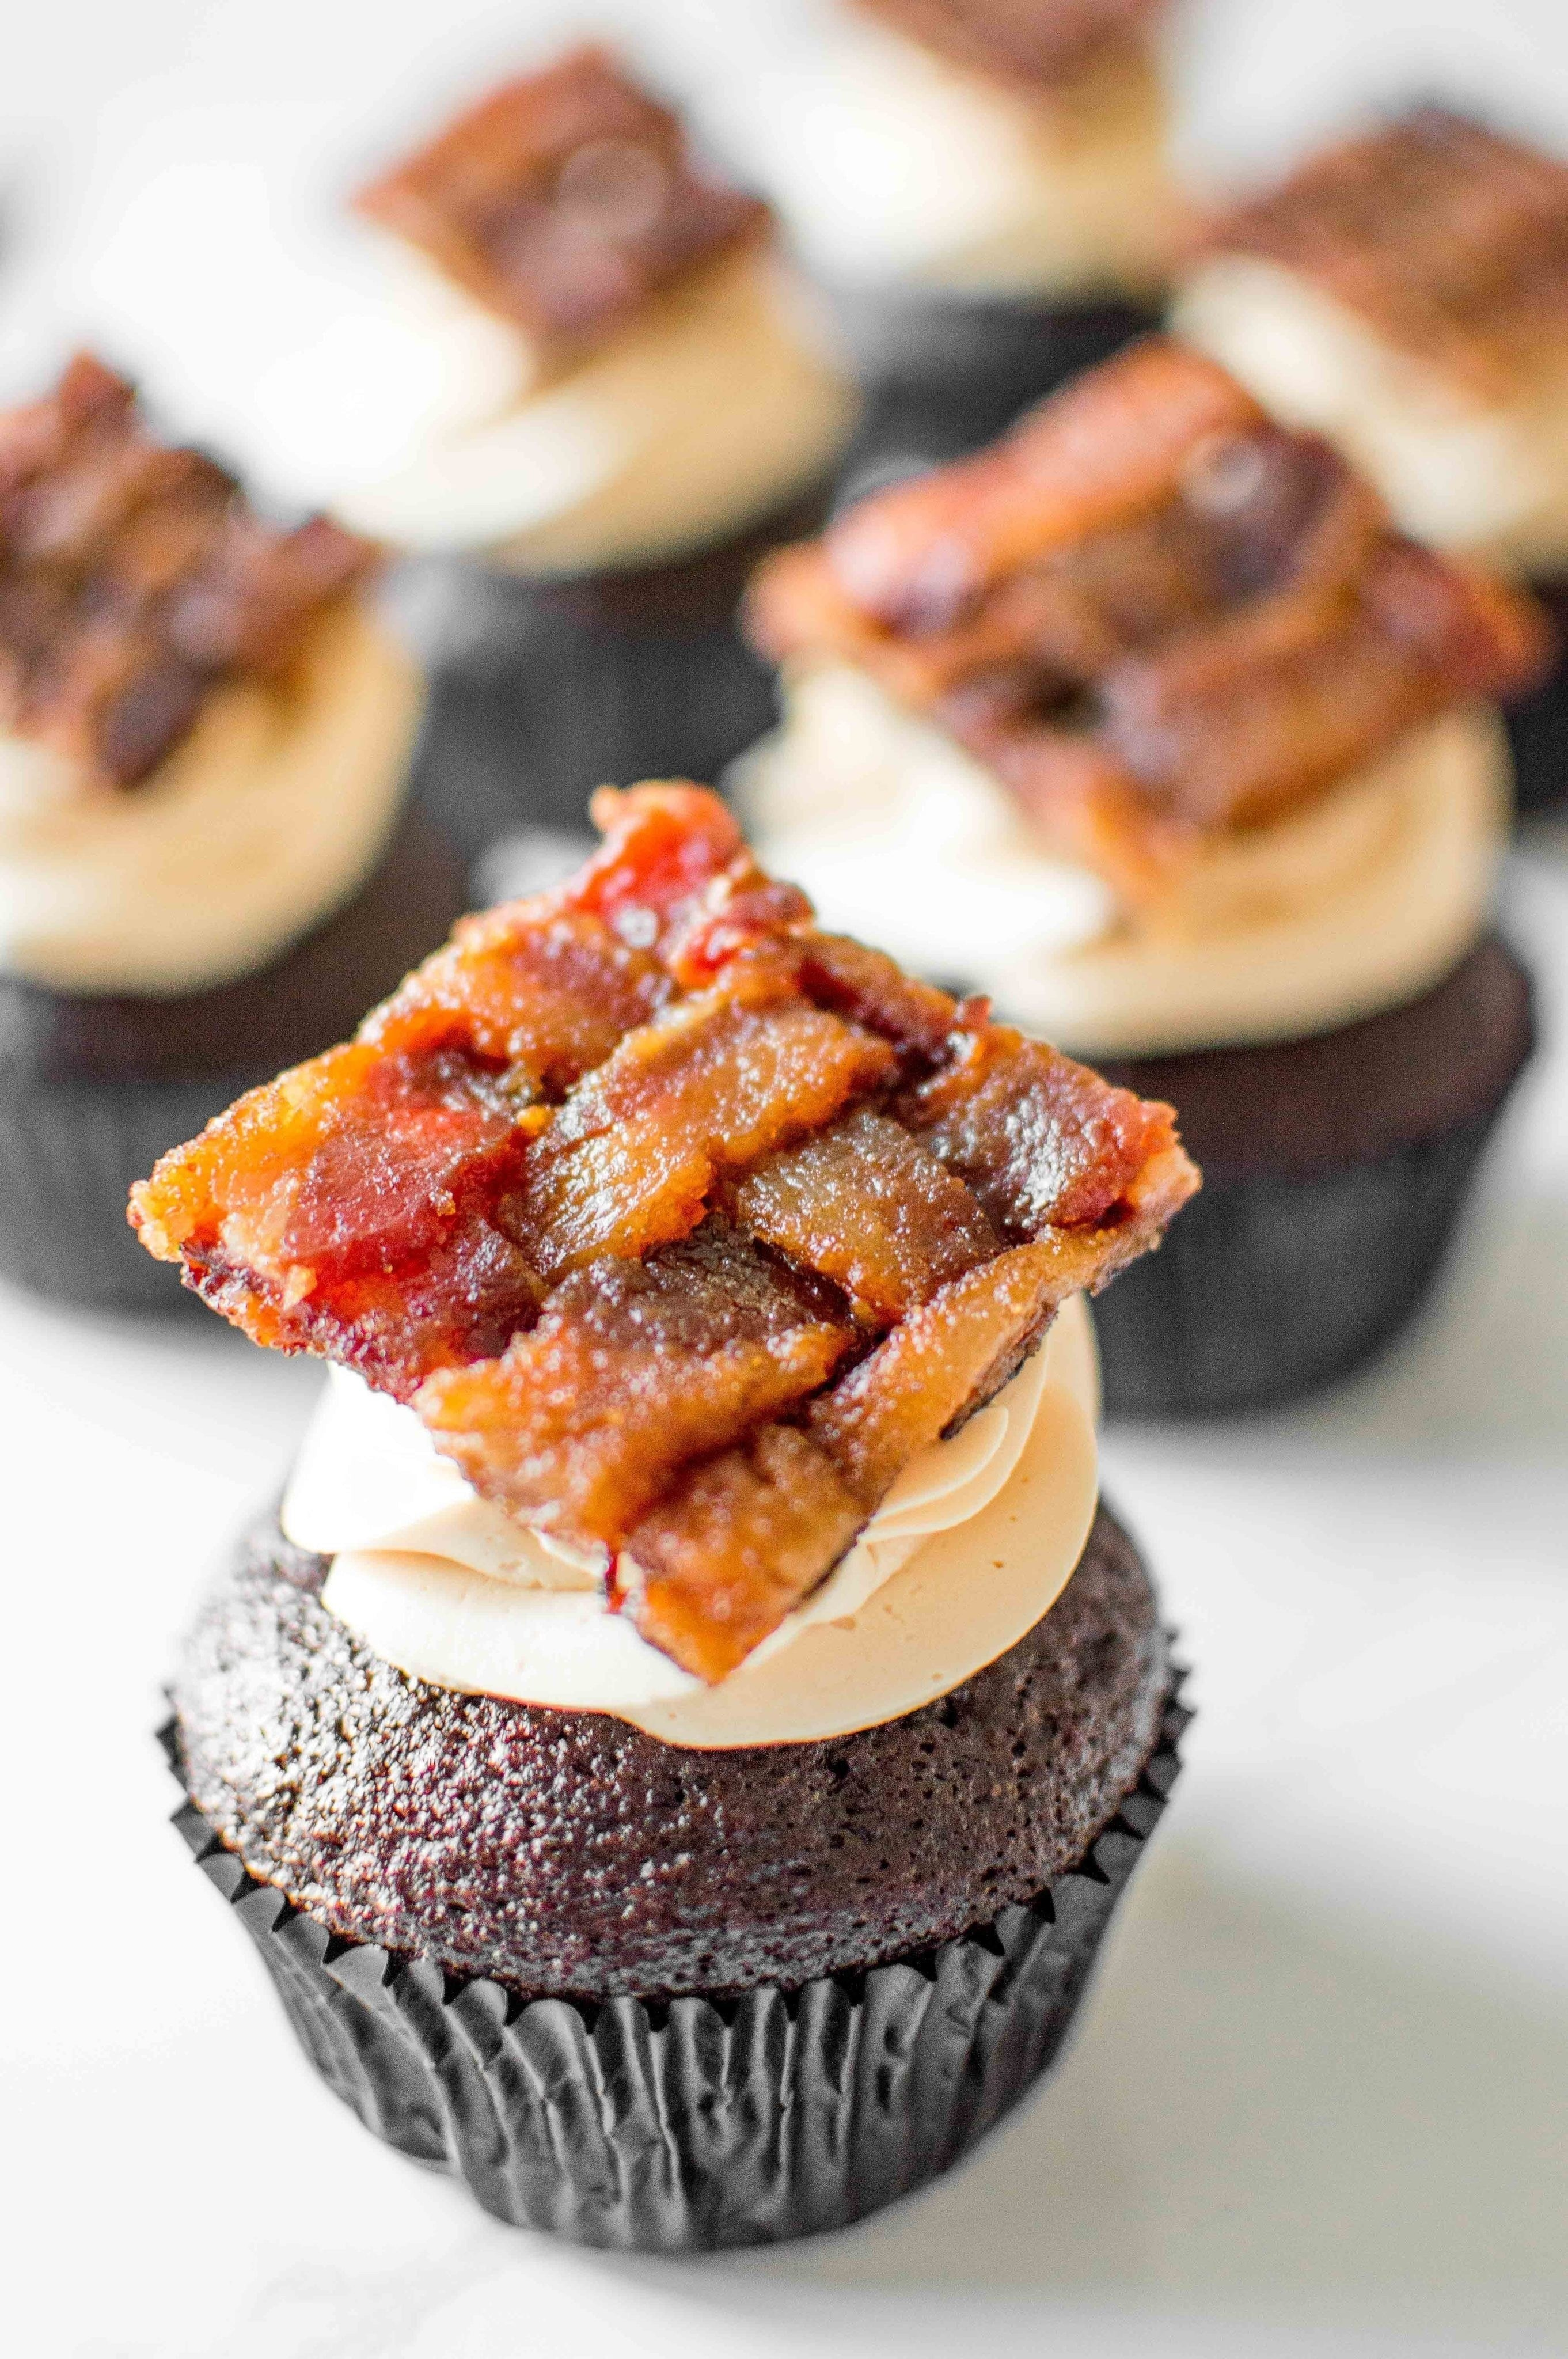 Basketweave Bacon Caramel Cupcakes · How To Bake A Chocolate Cupcake ...